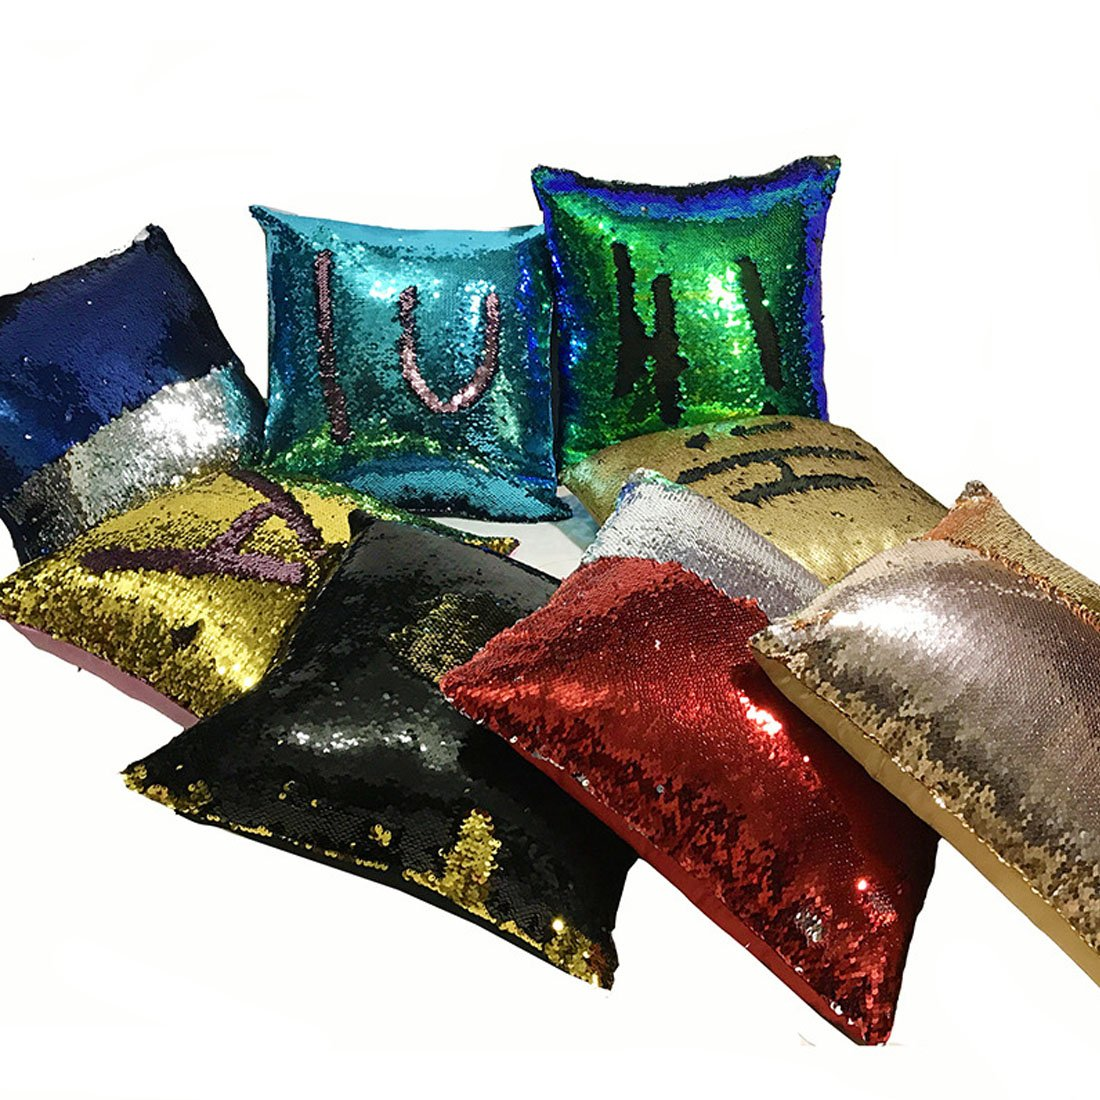 Fivbop Funny Two-Color Decorative Pillow Case Square Paillette Throw Mermaid Sequins Cushion Covers 16 X 16 for Home Decor Party//Sofa//Bed